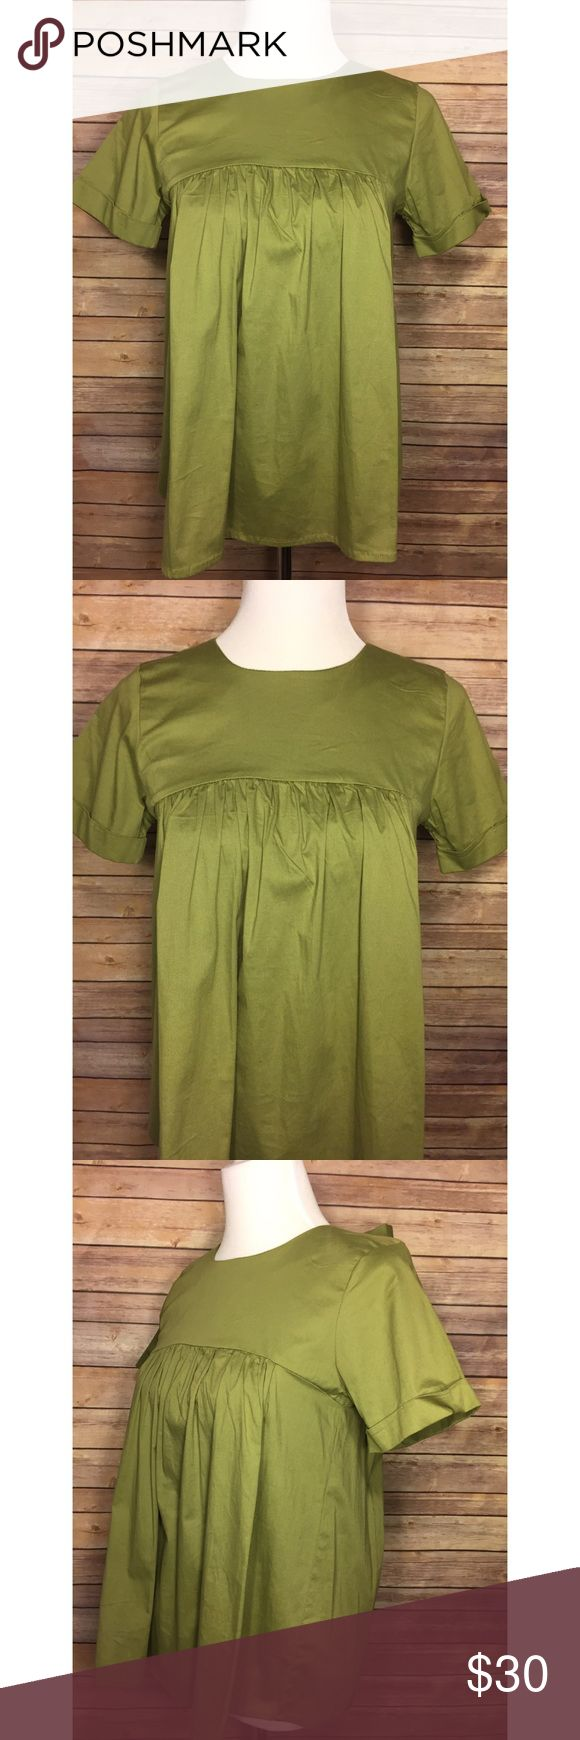 "Bobeau Green Short Sleeve Babydoll Back Tie Blouse Bobeau Womens Green XS Short Sleeve Babydoll Back Tie Blouse Top  Measurements approximately (laying flat): Underarm to underarm- 16.5"" Length- 24.5"" bobeau Tops Blouses"